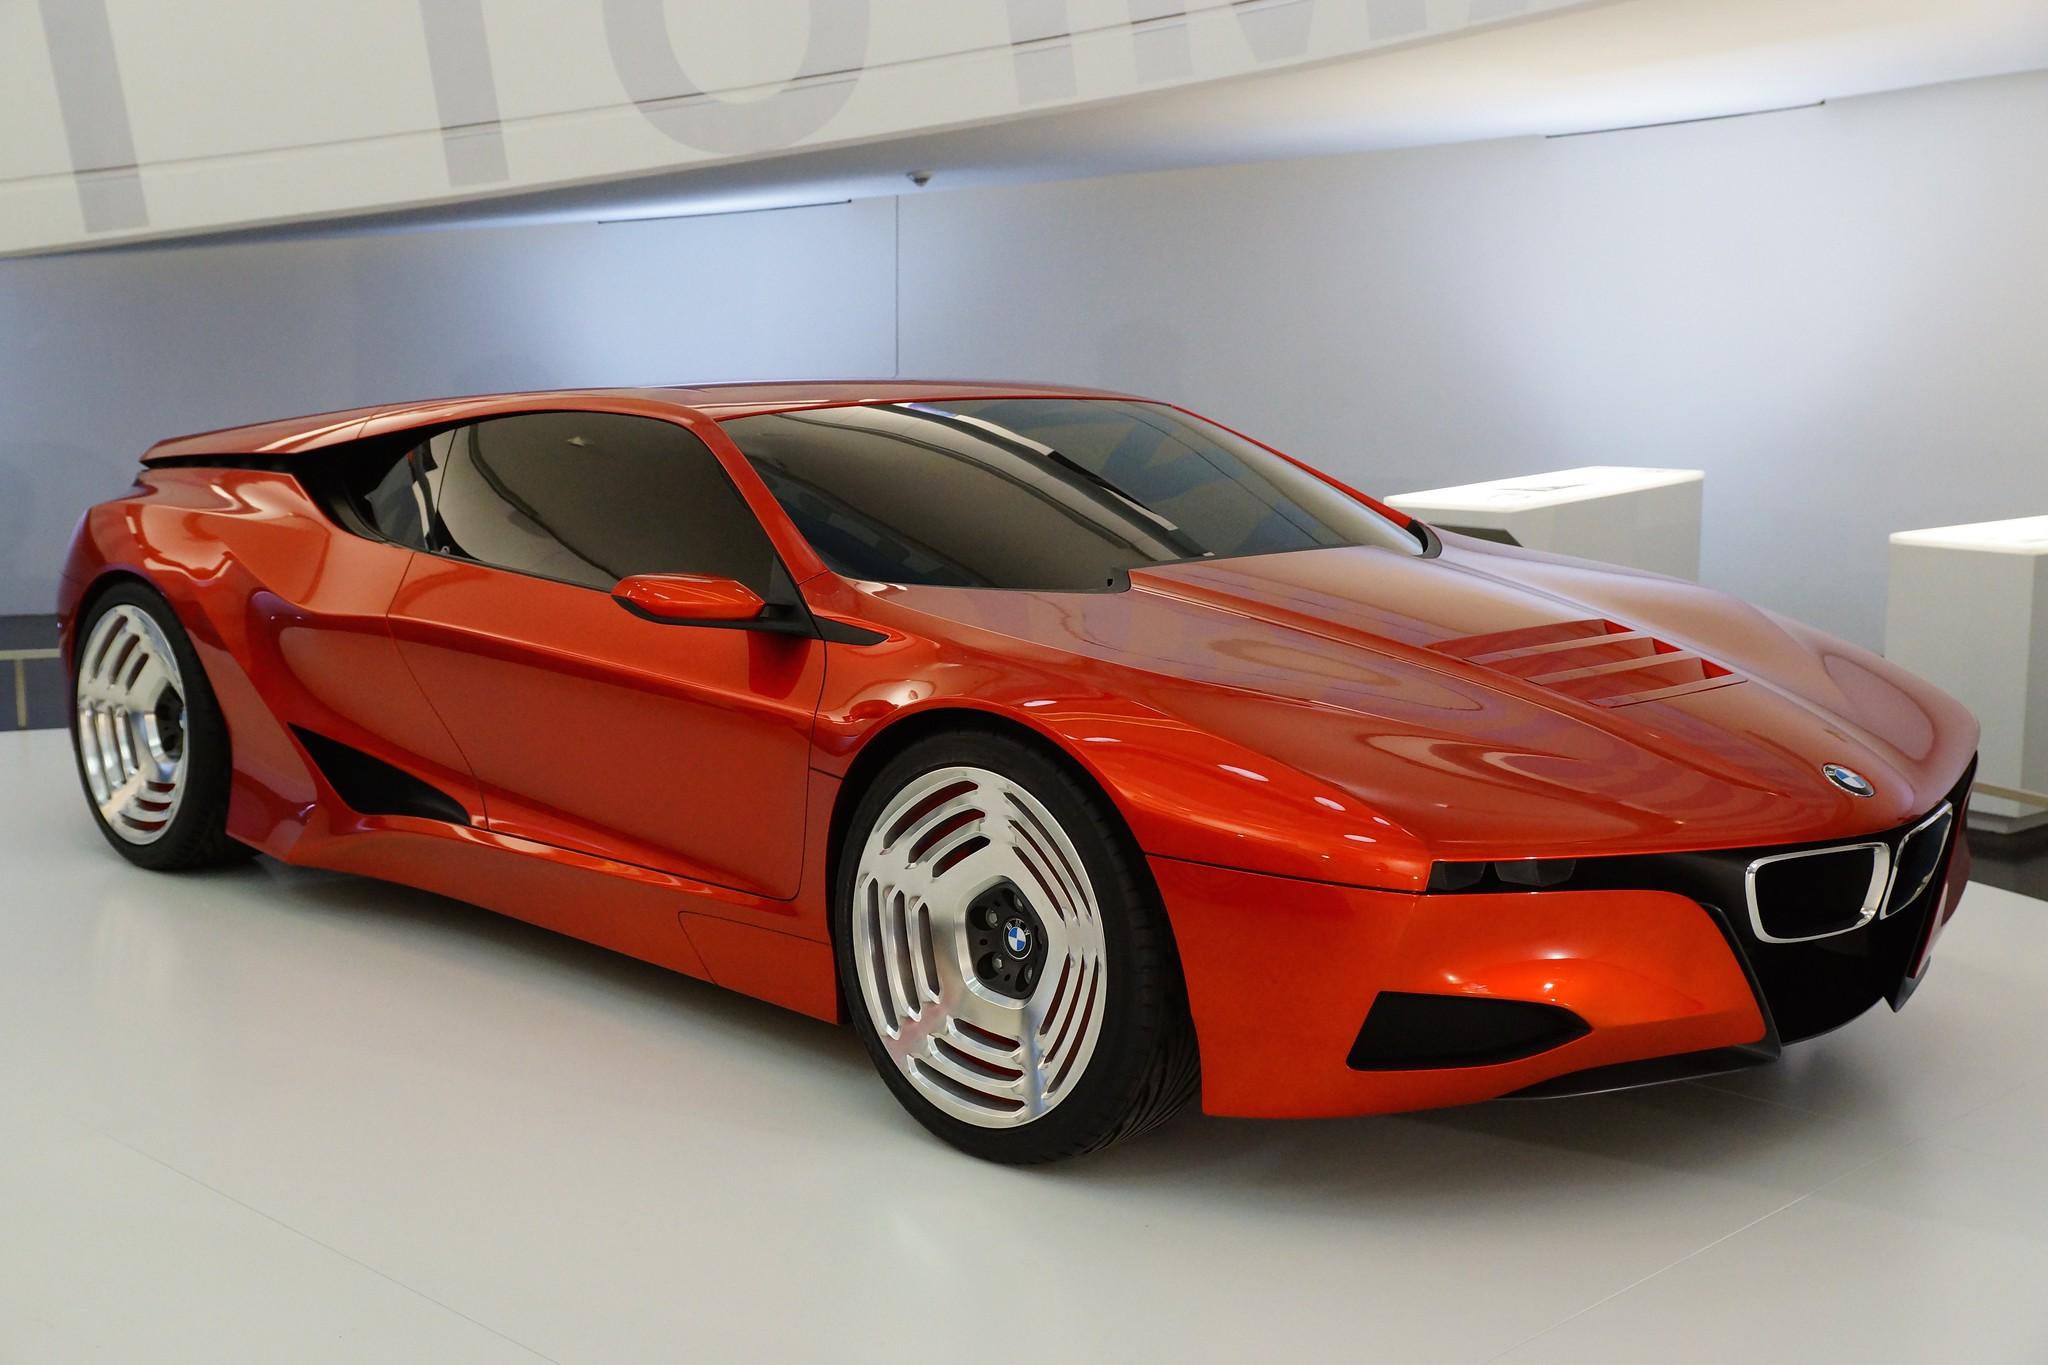 2008 Bmw M1 Hommage At The Bmw Museum In Munich Bavaria Germany Flickr Photo Sharing